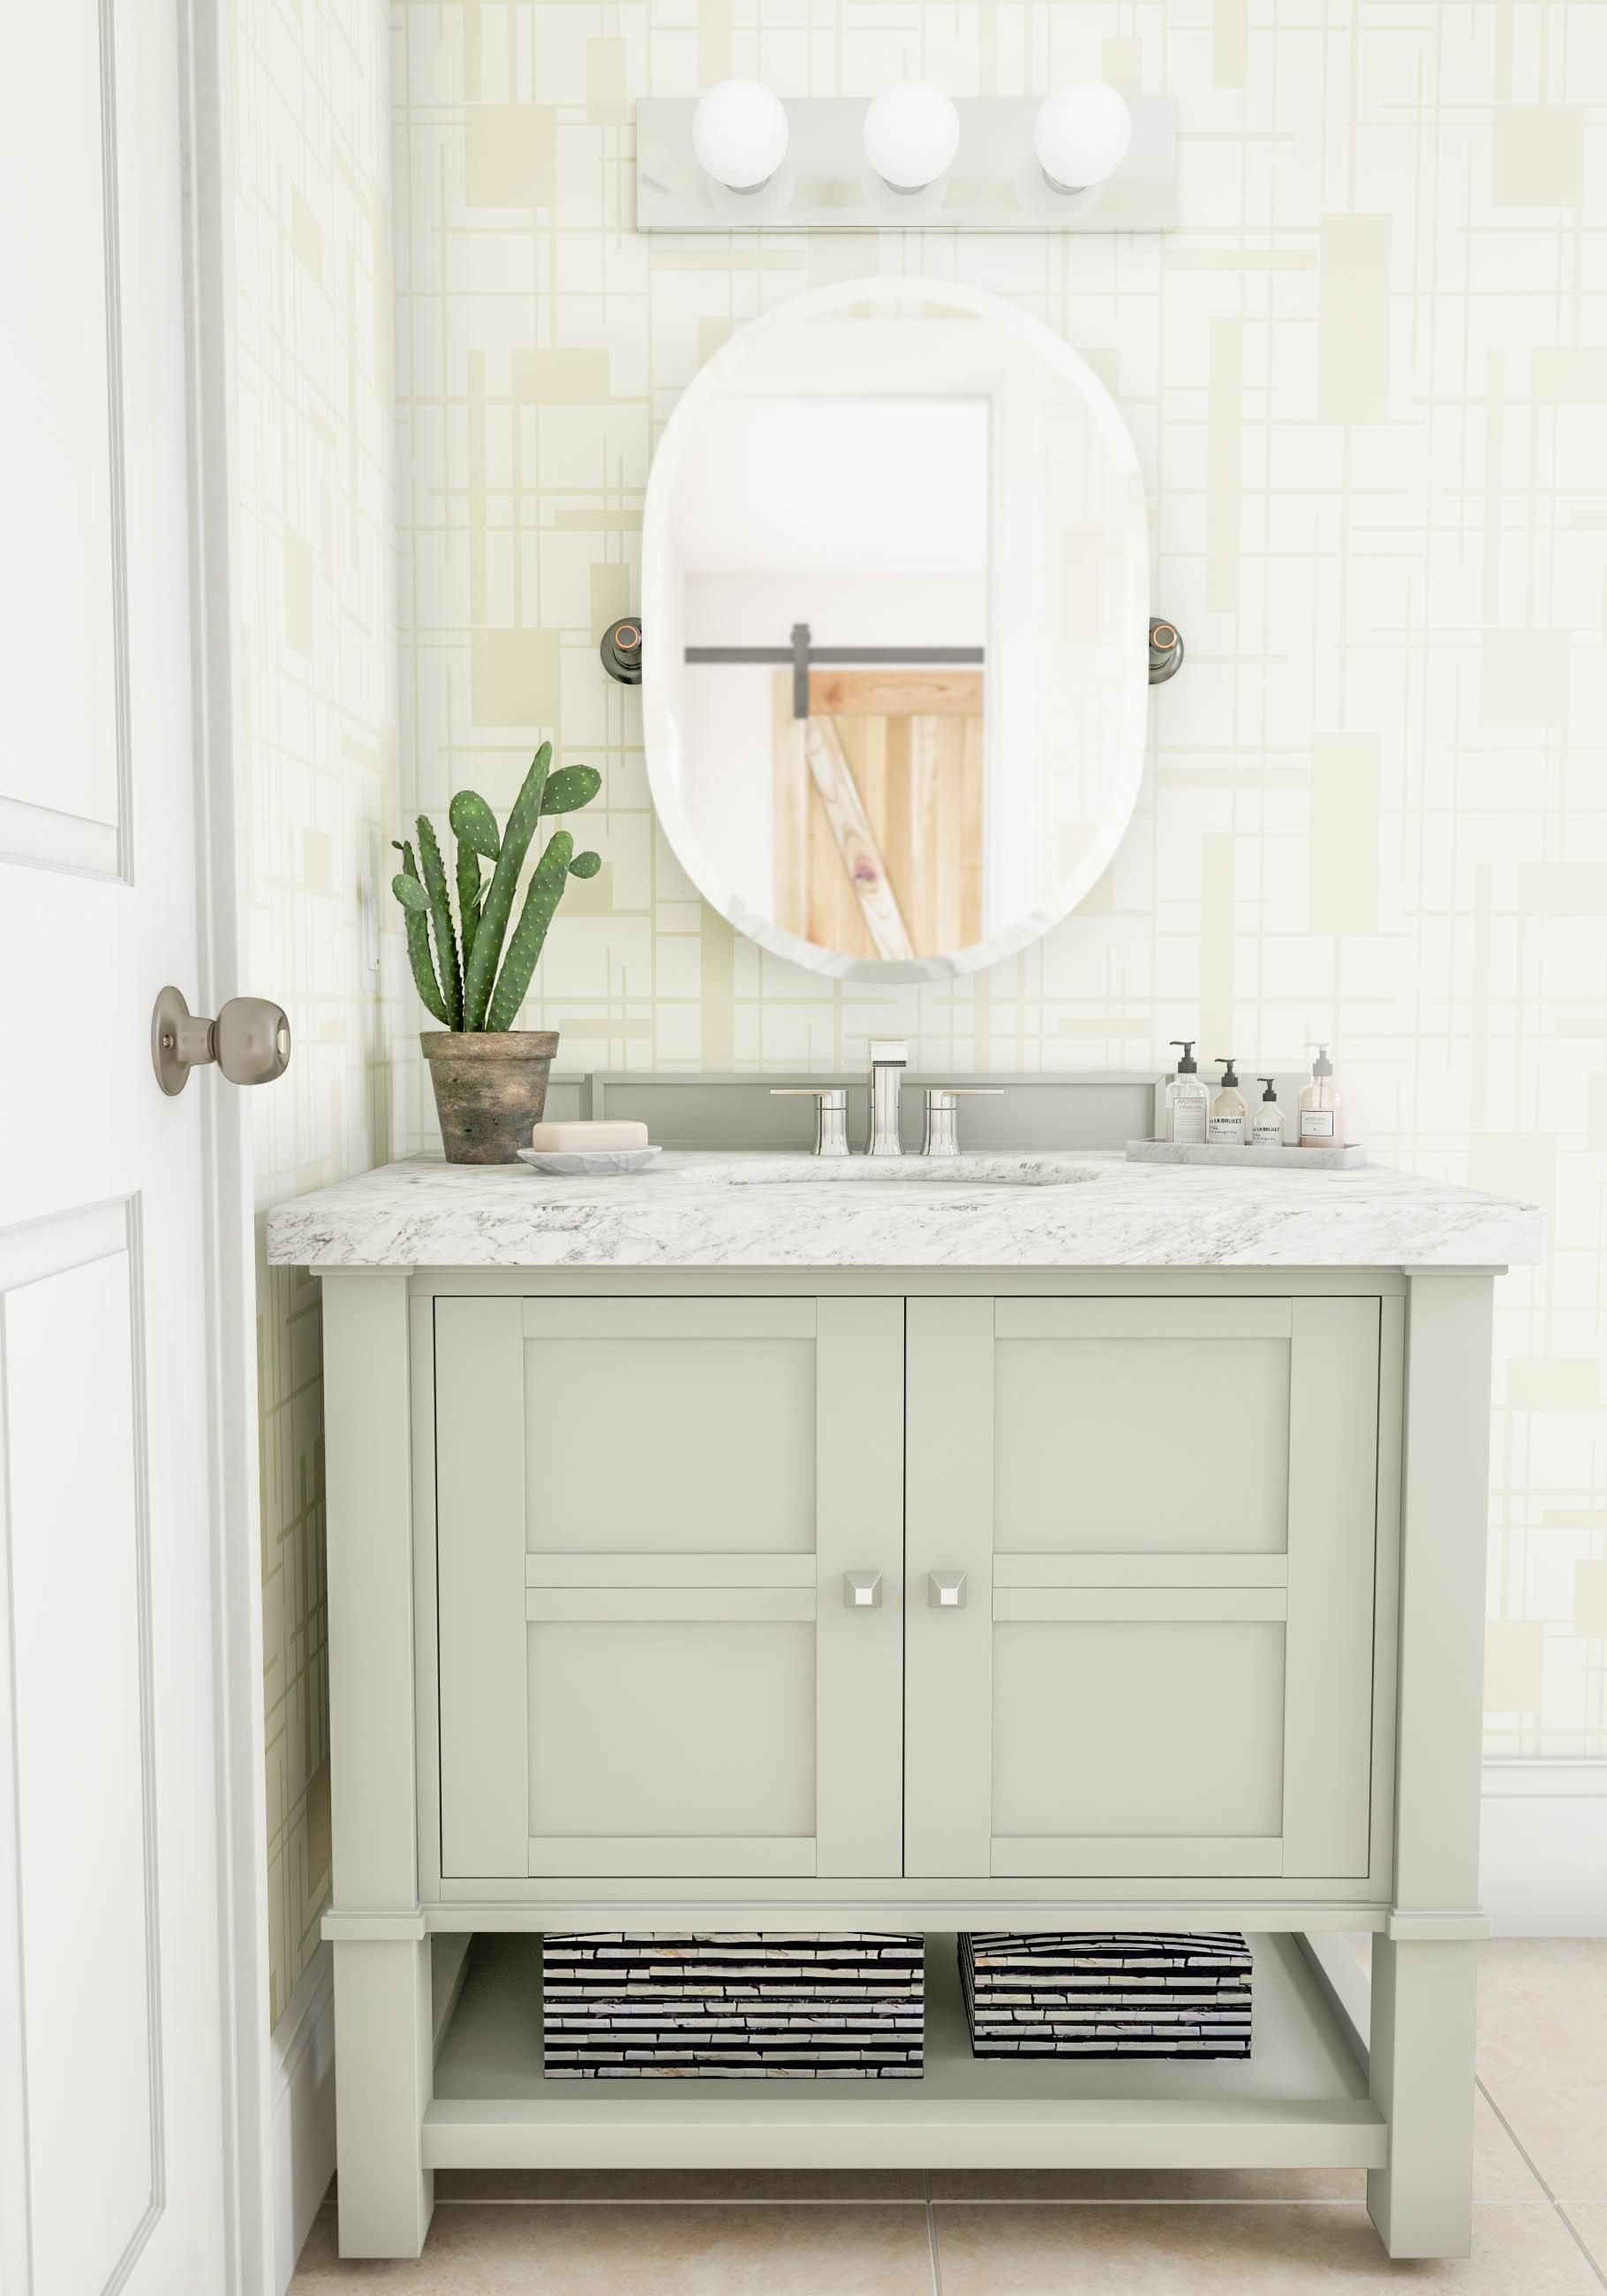 Scale to the size you really need This single sink vanity features